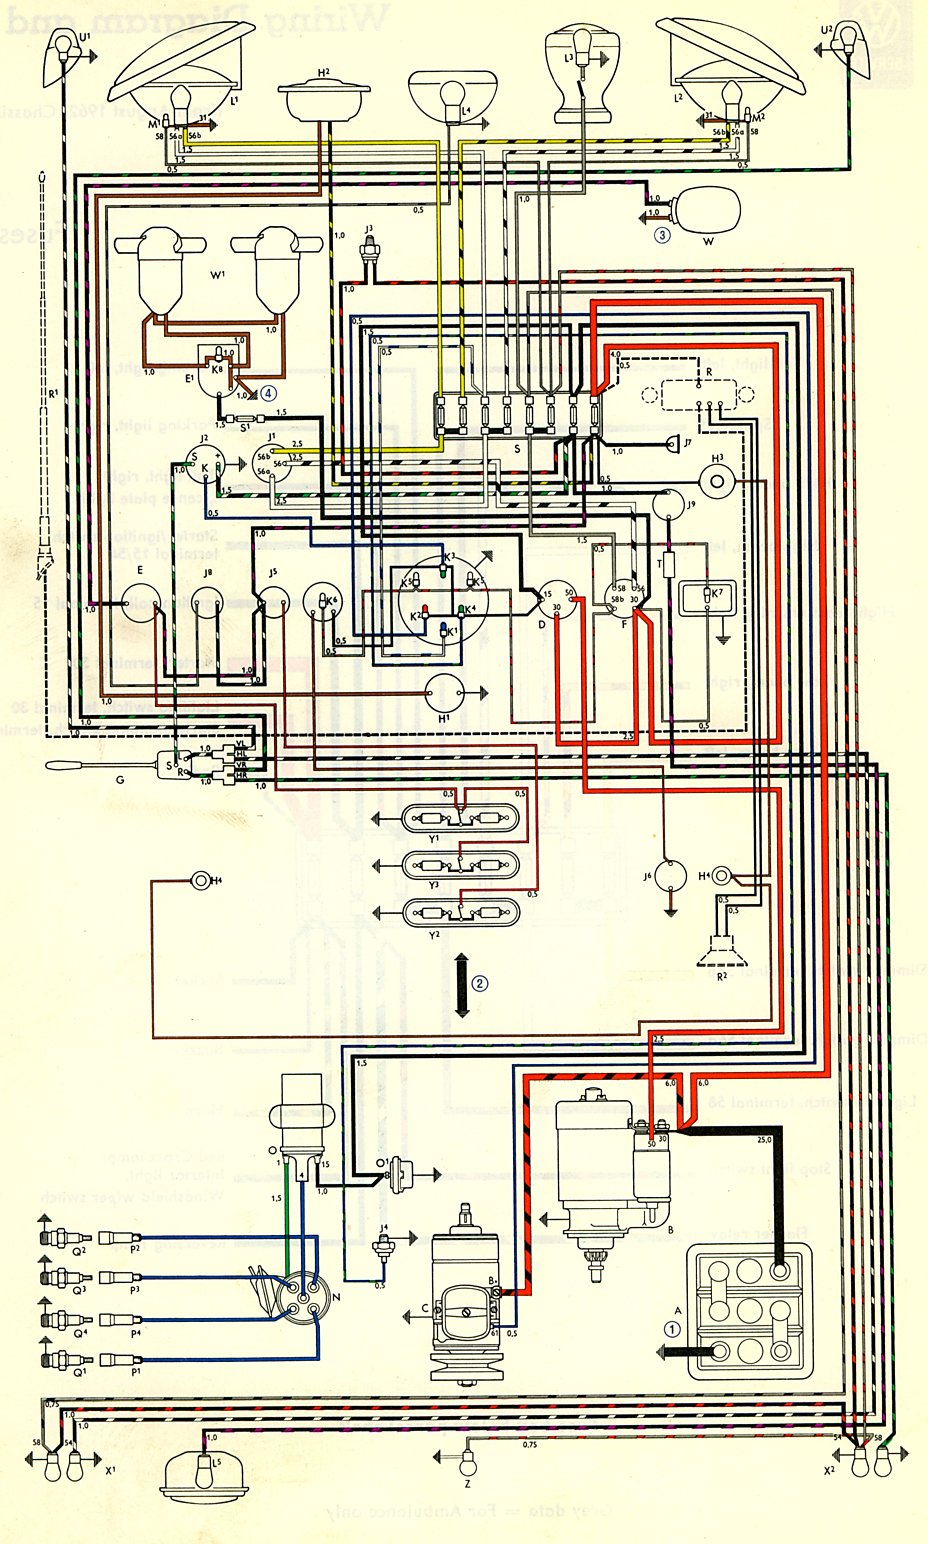 bus_63 1963 bus wiring diagram thegoldenbug com wiring diagram for thomas built school bus at panicattacktreatment.co